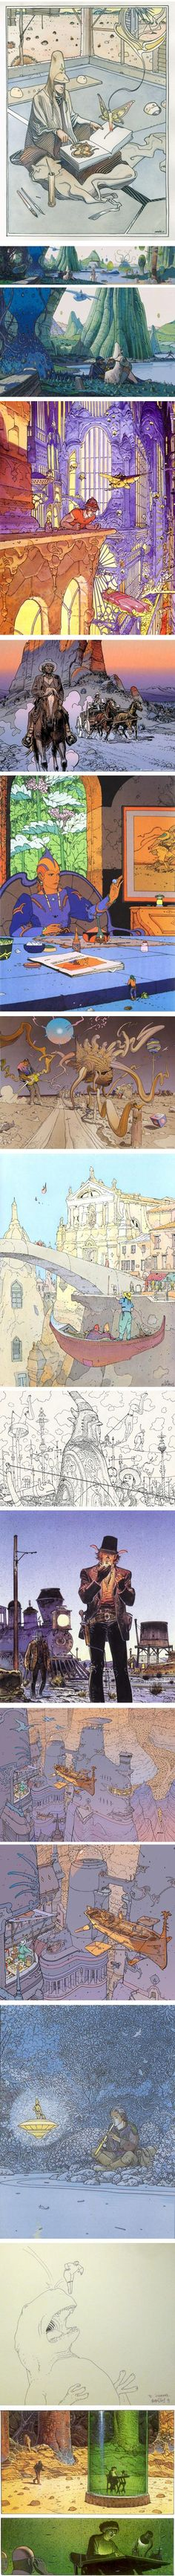 Jeans drawing Jean Giraud (Moebius) - I know I& already pinned a few about Moe. Jean Giraud (Moebius) - I know I& already pinned a few about Moebius, but both the text and the acompanying set of images are too good to be missed. Jean Giraud, Comic Books Art, Comic Art, Moebius Art, Illustrator, Ligne Claire, Art Et Illustration, Art Graphique, French Artists